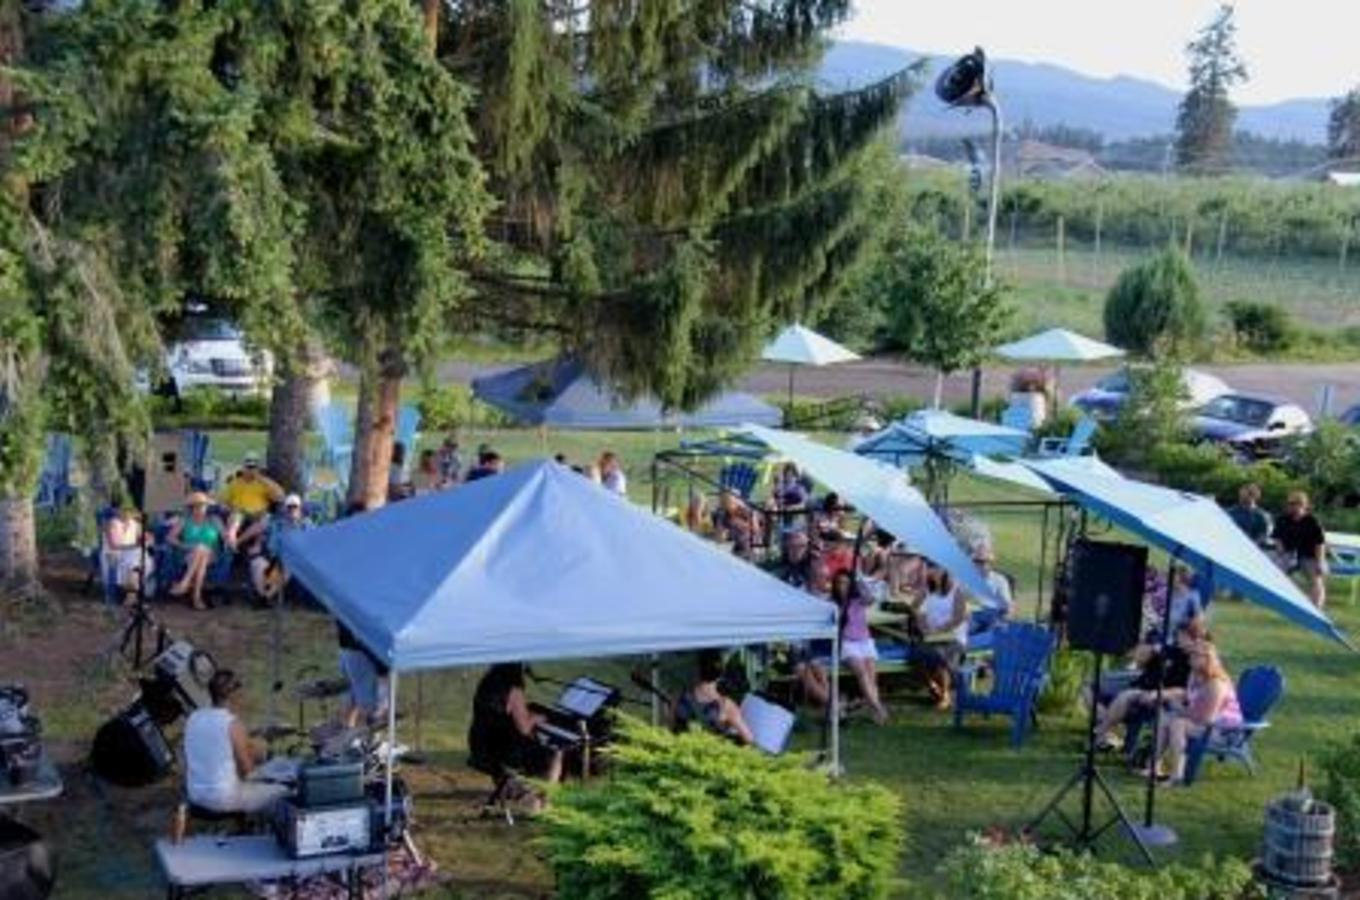 Music in the Picnic Area